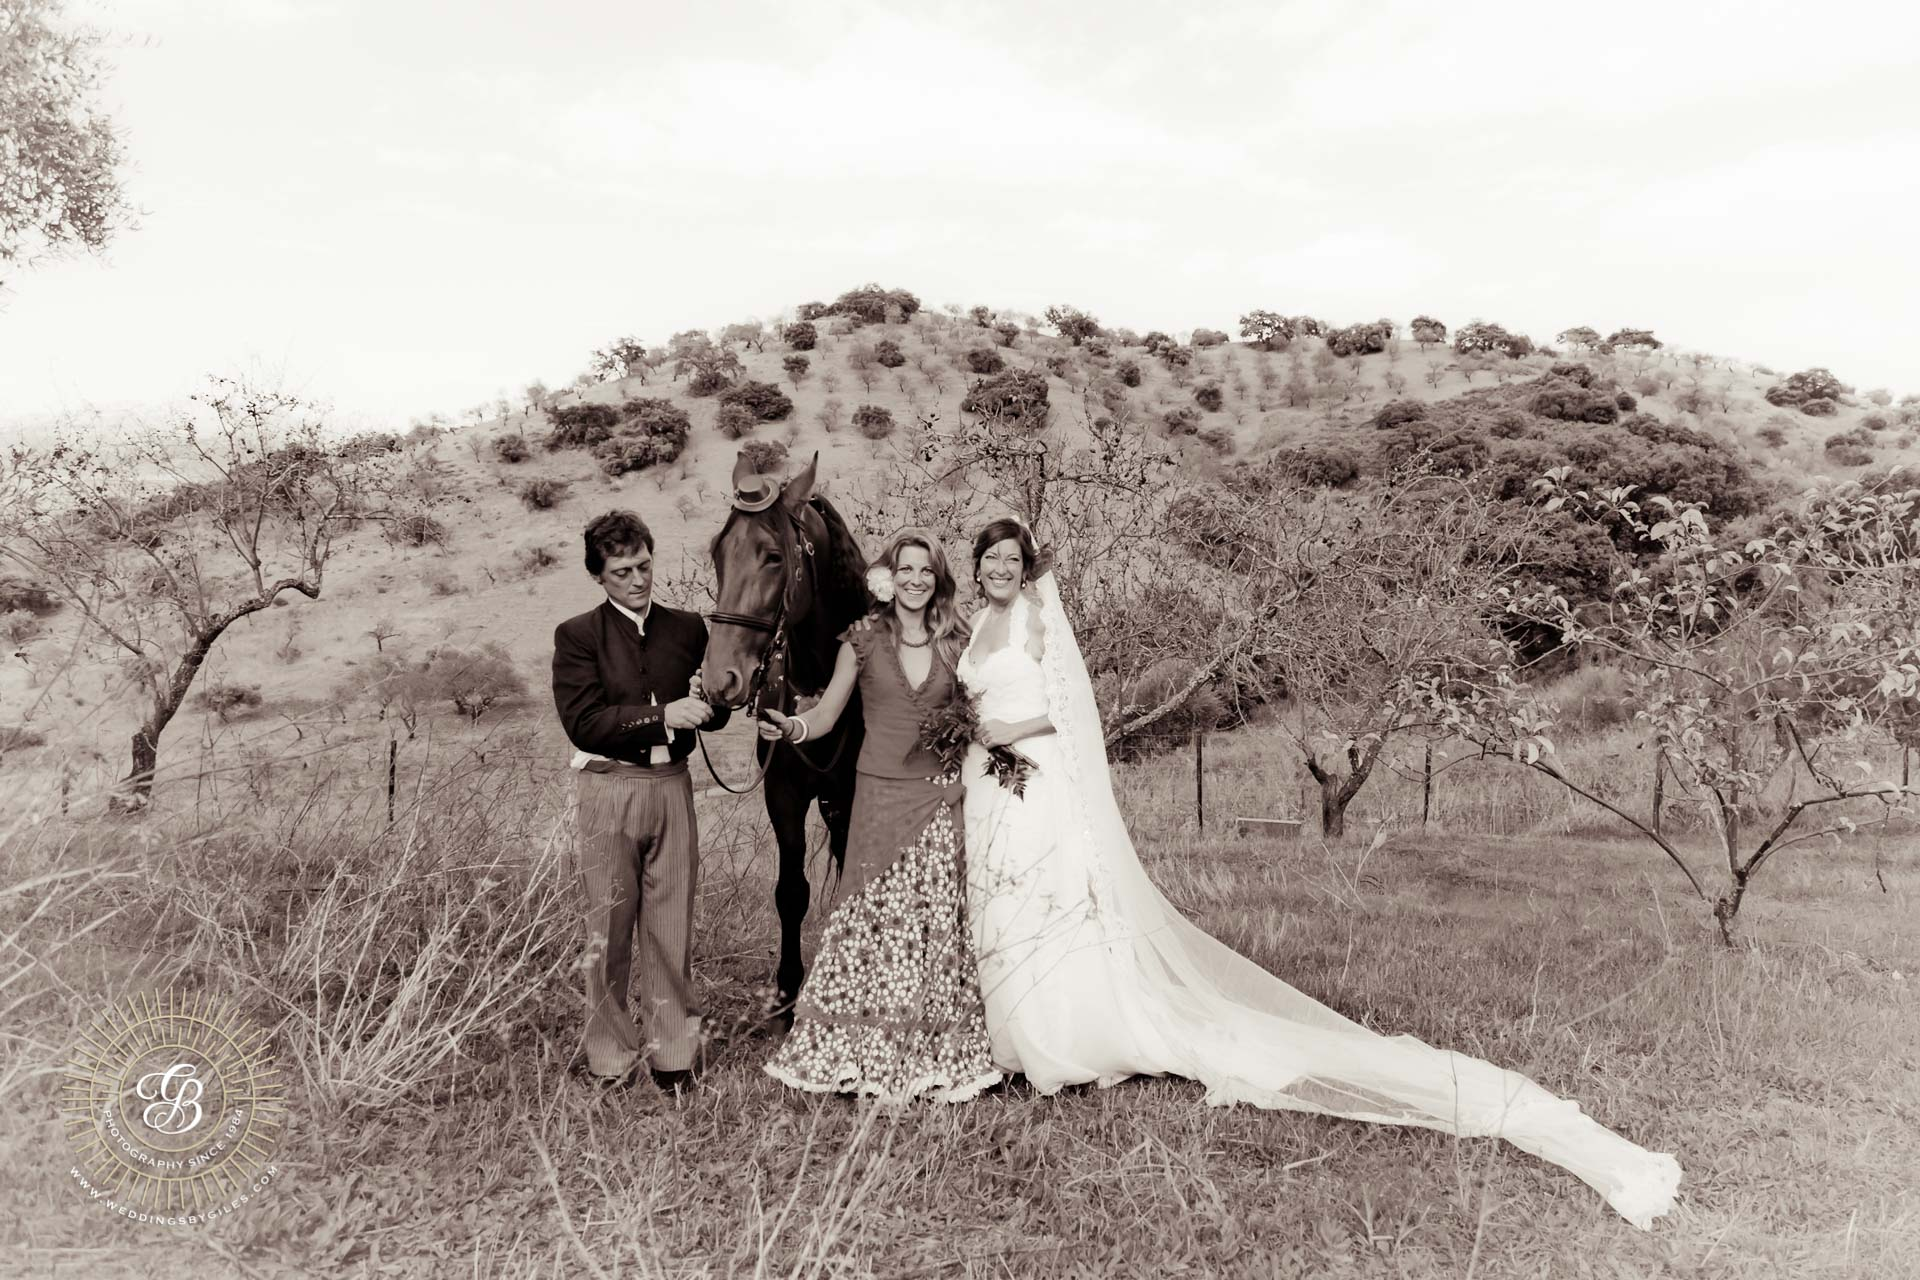 Andalucian wedding in the country side